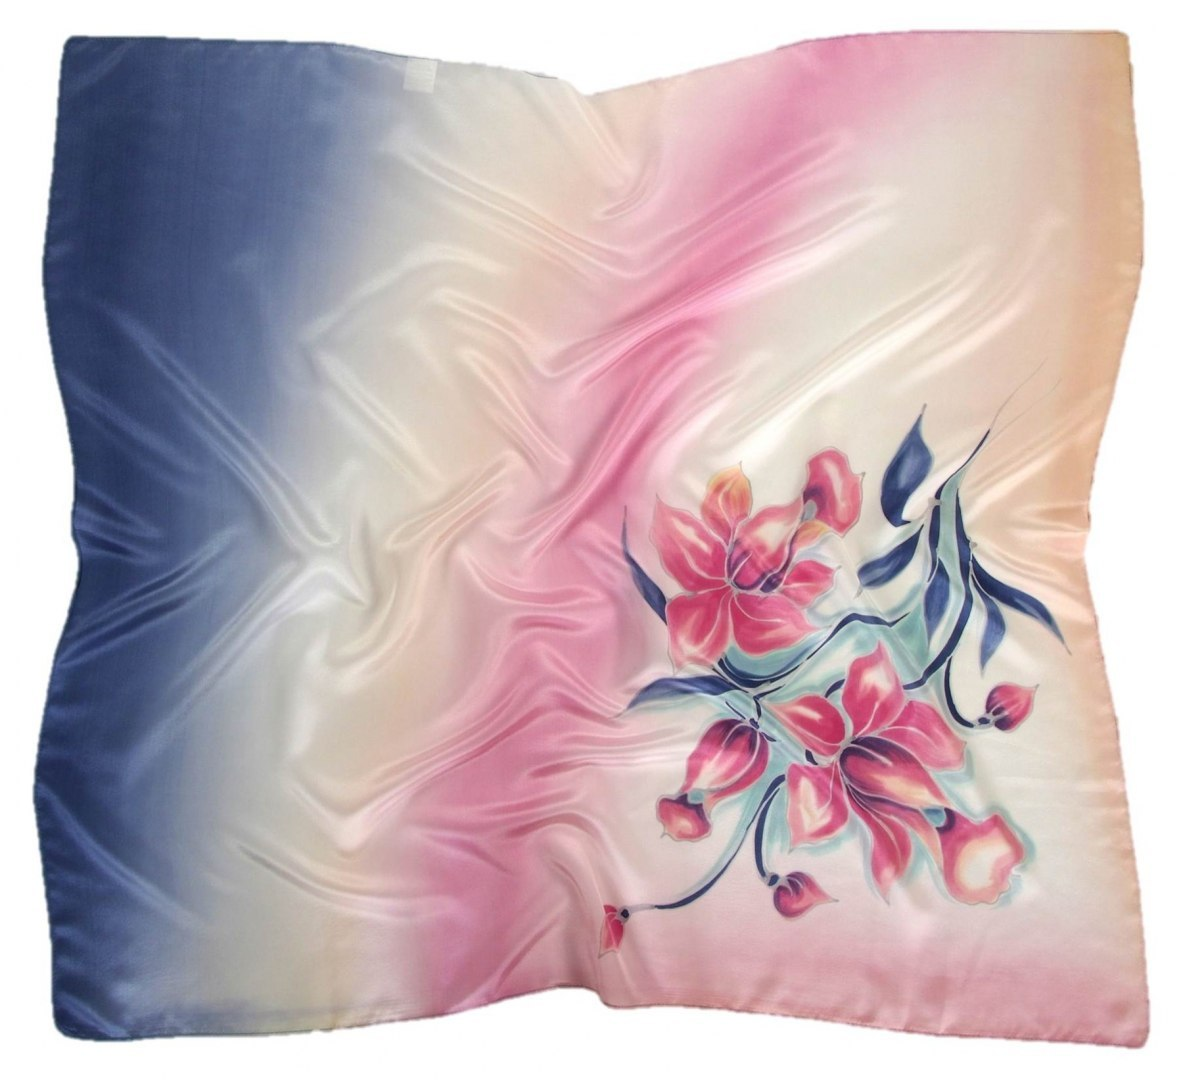 AM-462 Hand-painted silk scarf, 90x90cm